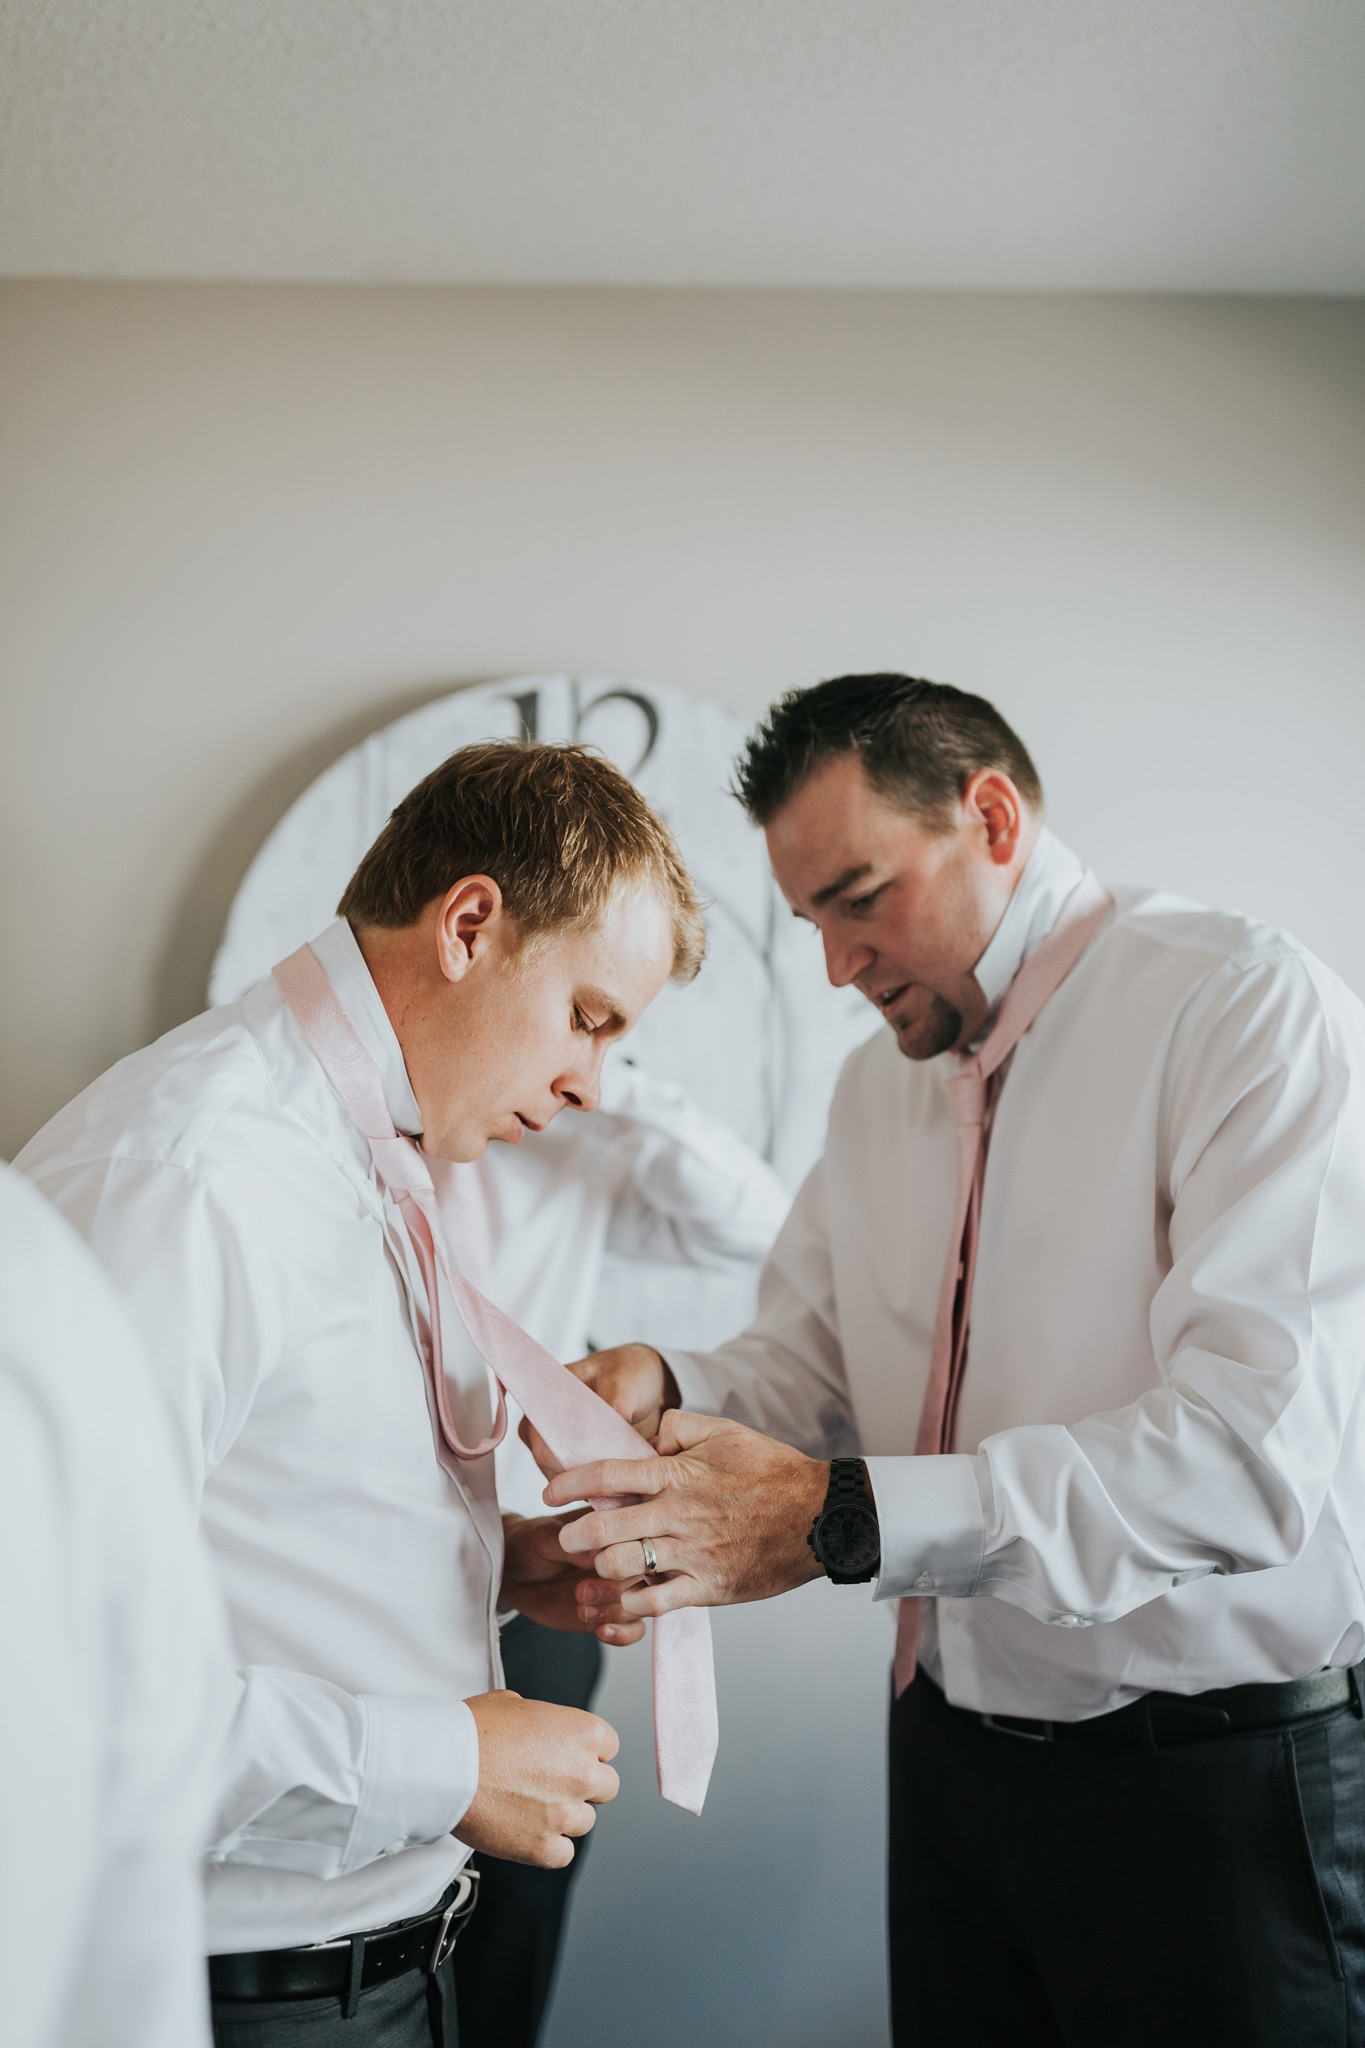 groomsman helping groom tie his wedding tie